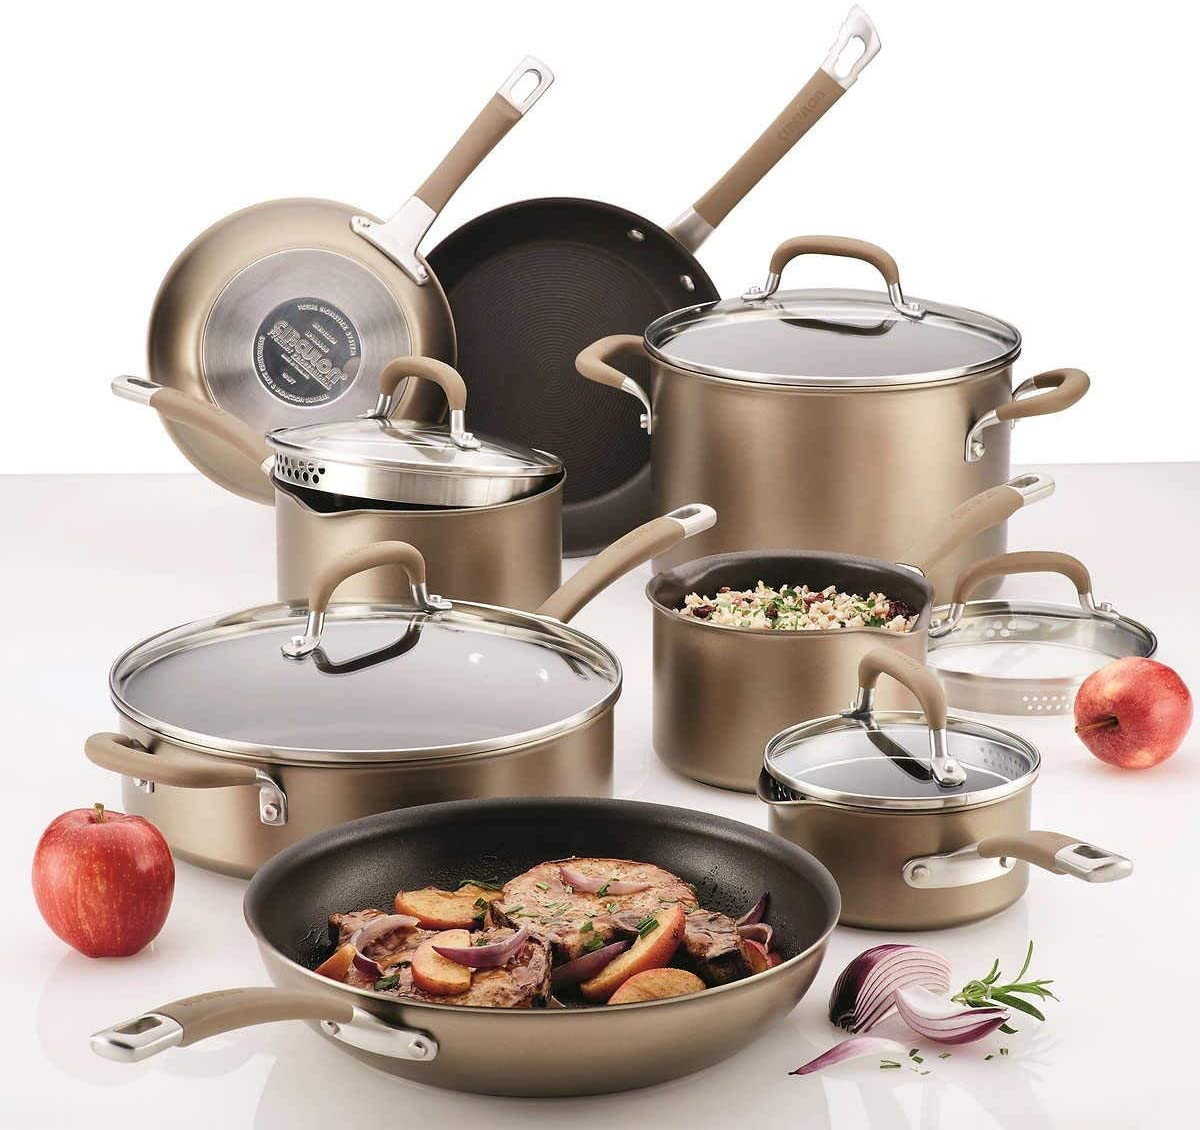 Review of Circulon Premier Professional 13-Piece Hard-Anodized Cookware Set (8 Cooking Vessels and 5 Lids)